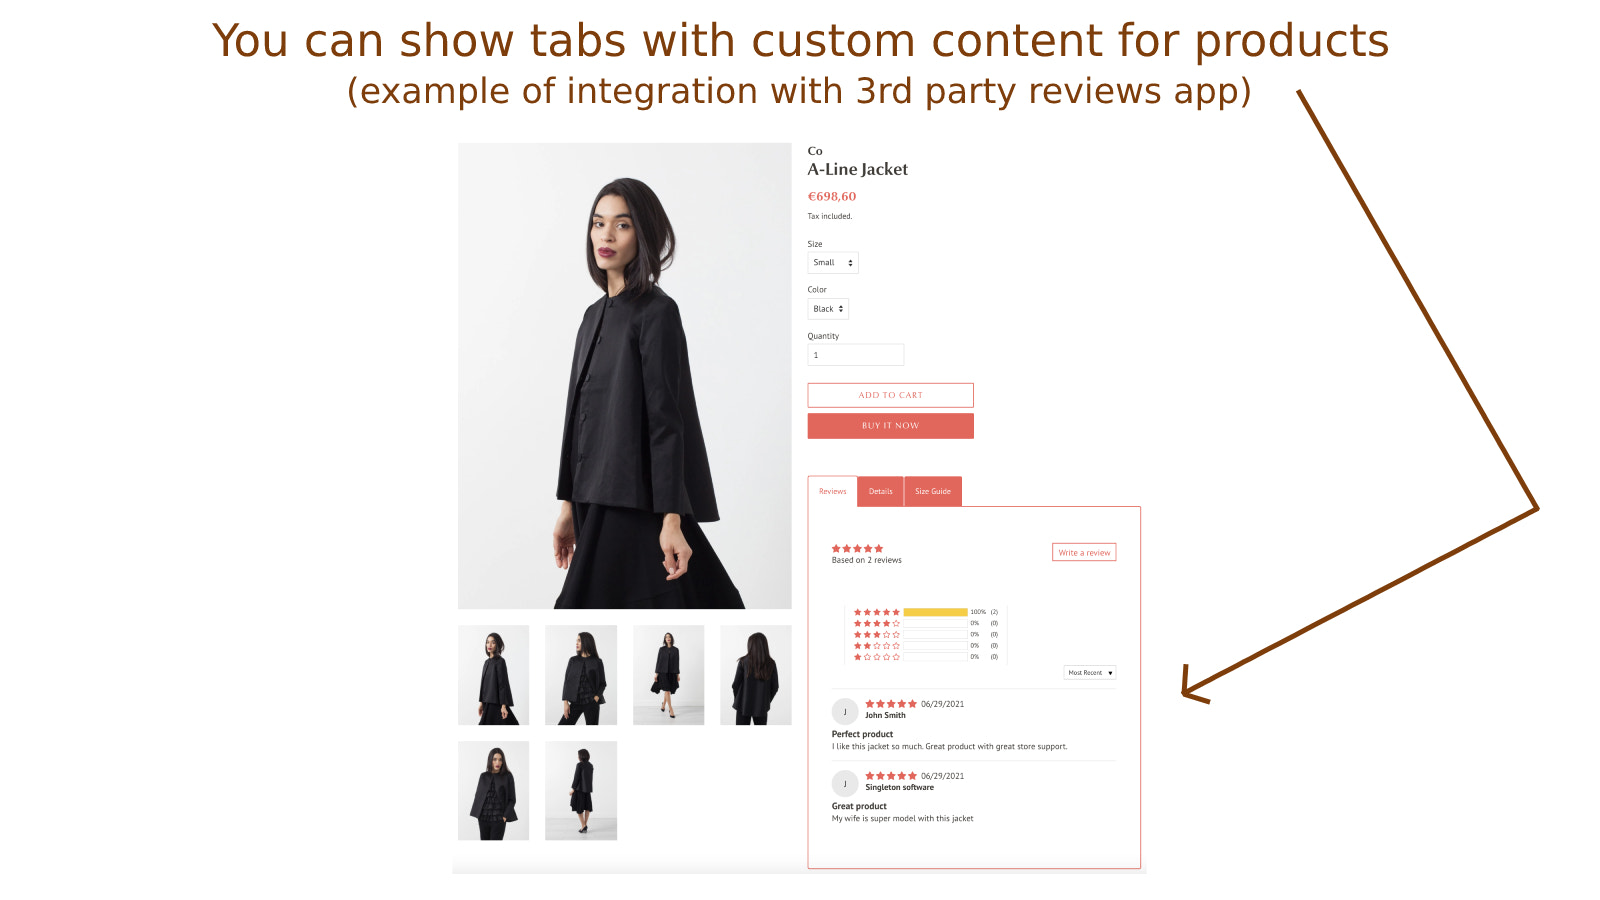 You can show tabs with custom content for products